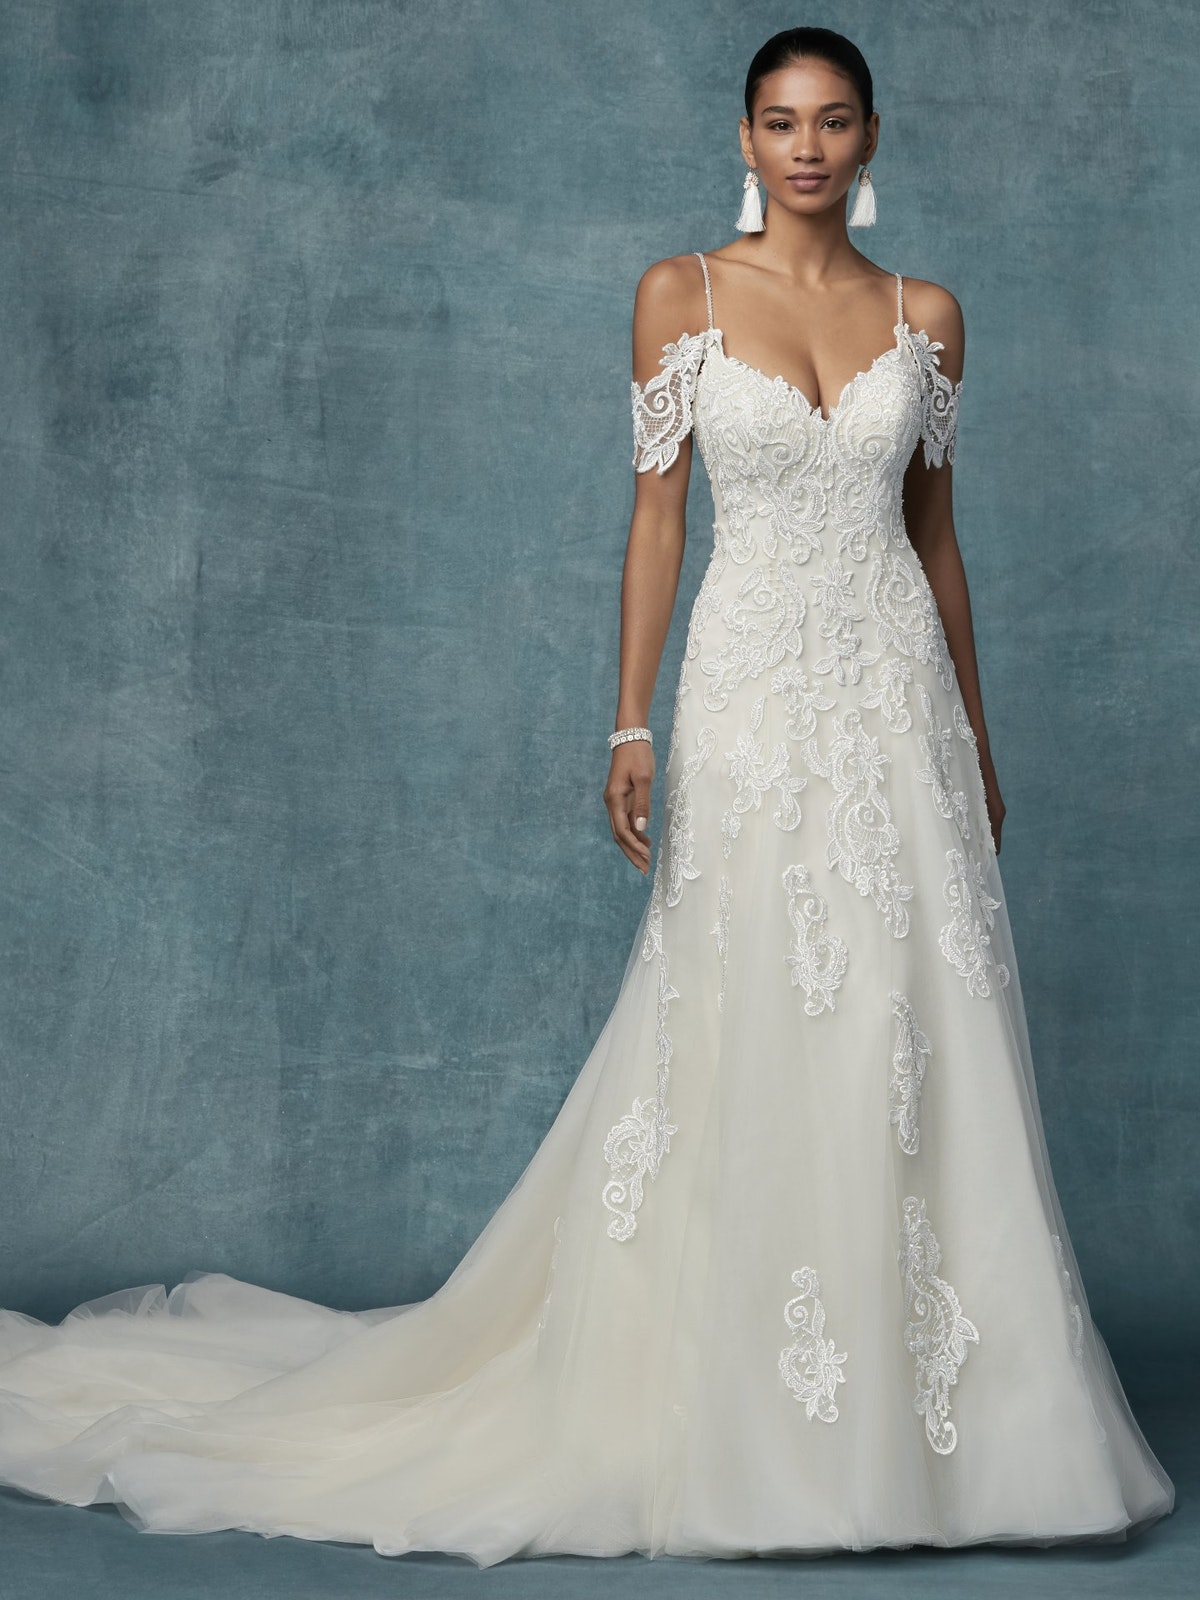 Sorrento Lace A Line Wedding Dress   Maggie Sottero